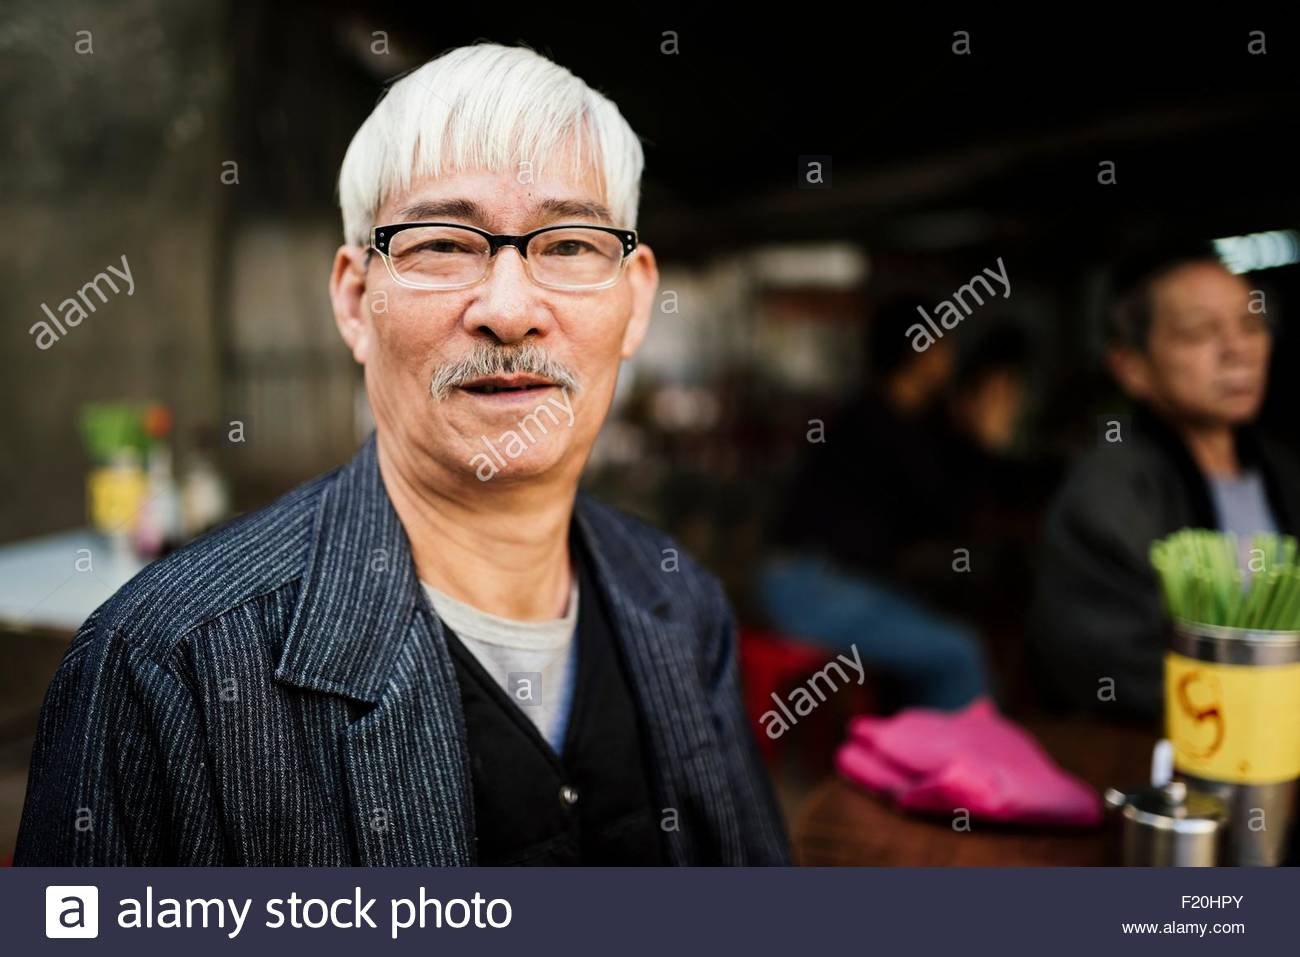 Portrait of senior man with grey hair wearing glasses looking at camera - Stock Image